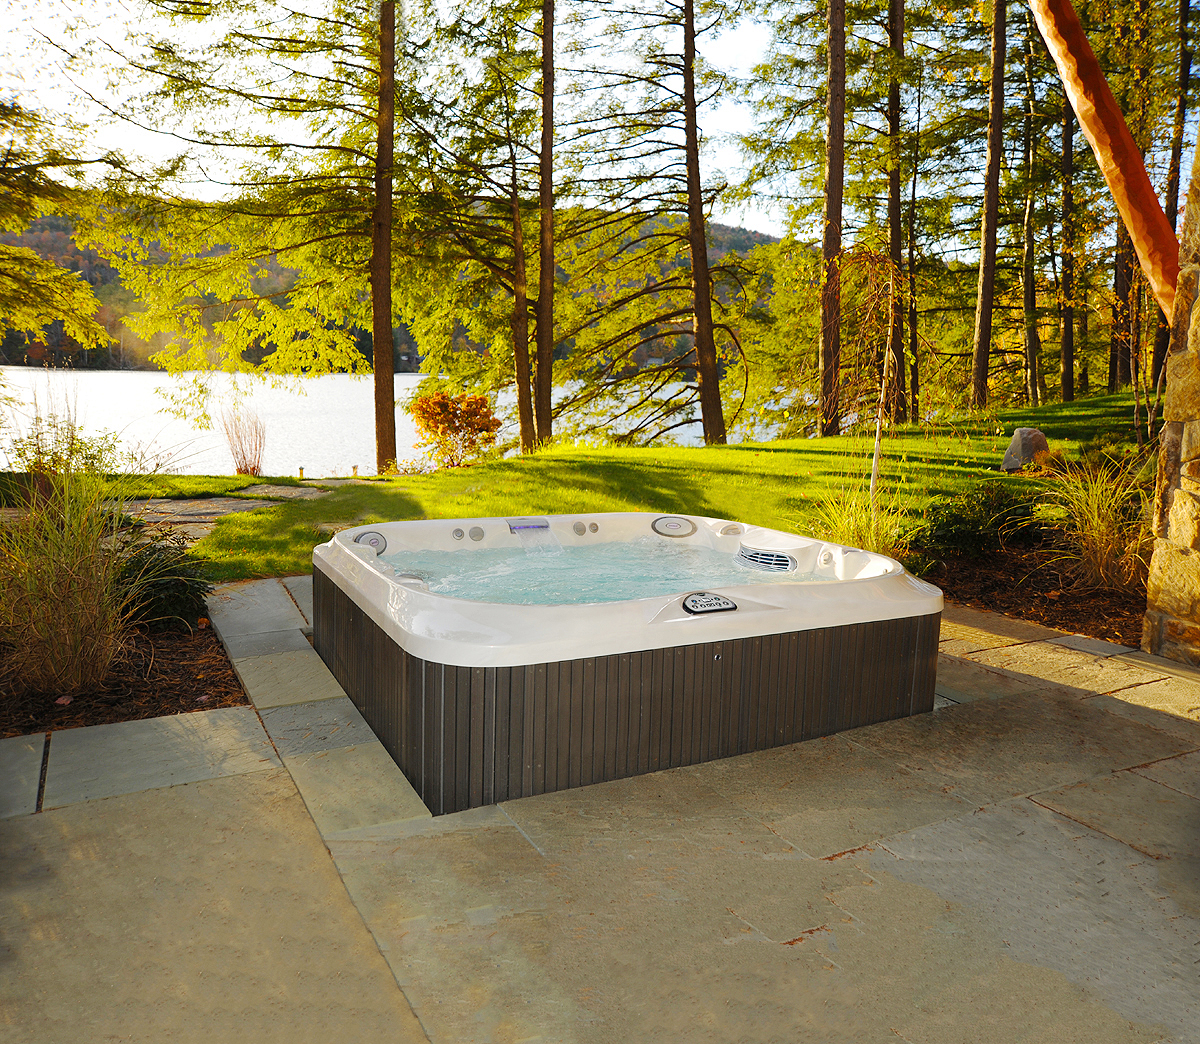 Jacuzzi Pool And Spa Kelowna Home Premium Pool And Spa The Ultimate In Luxury And Quality